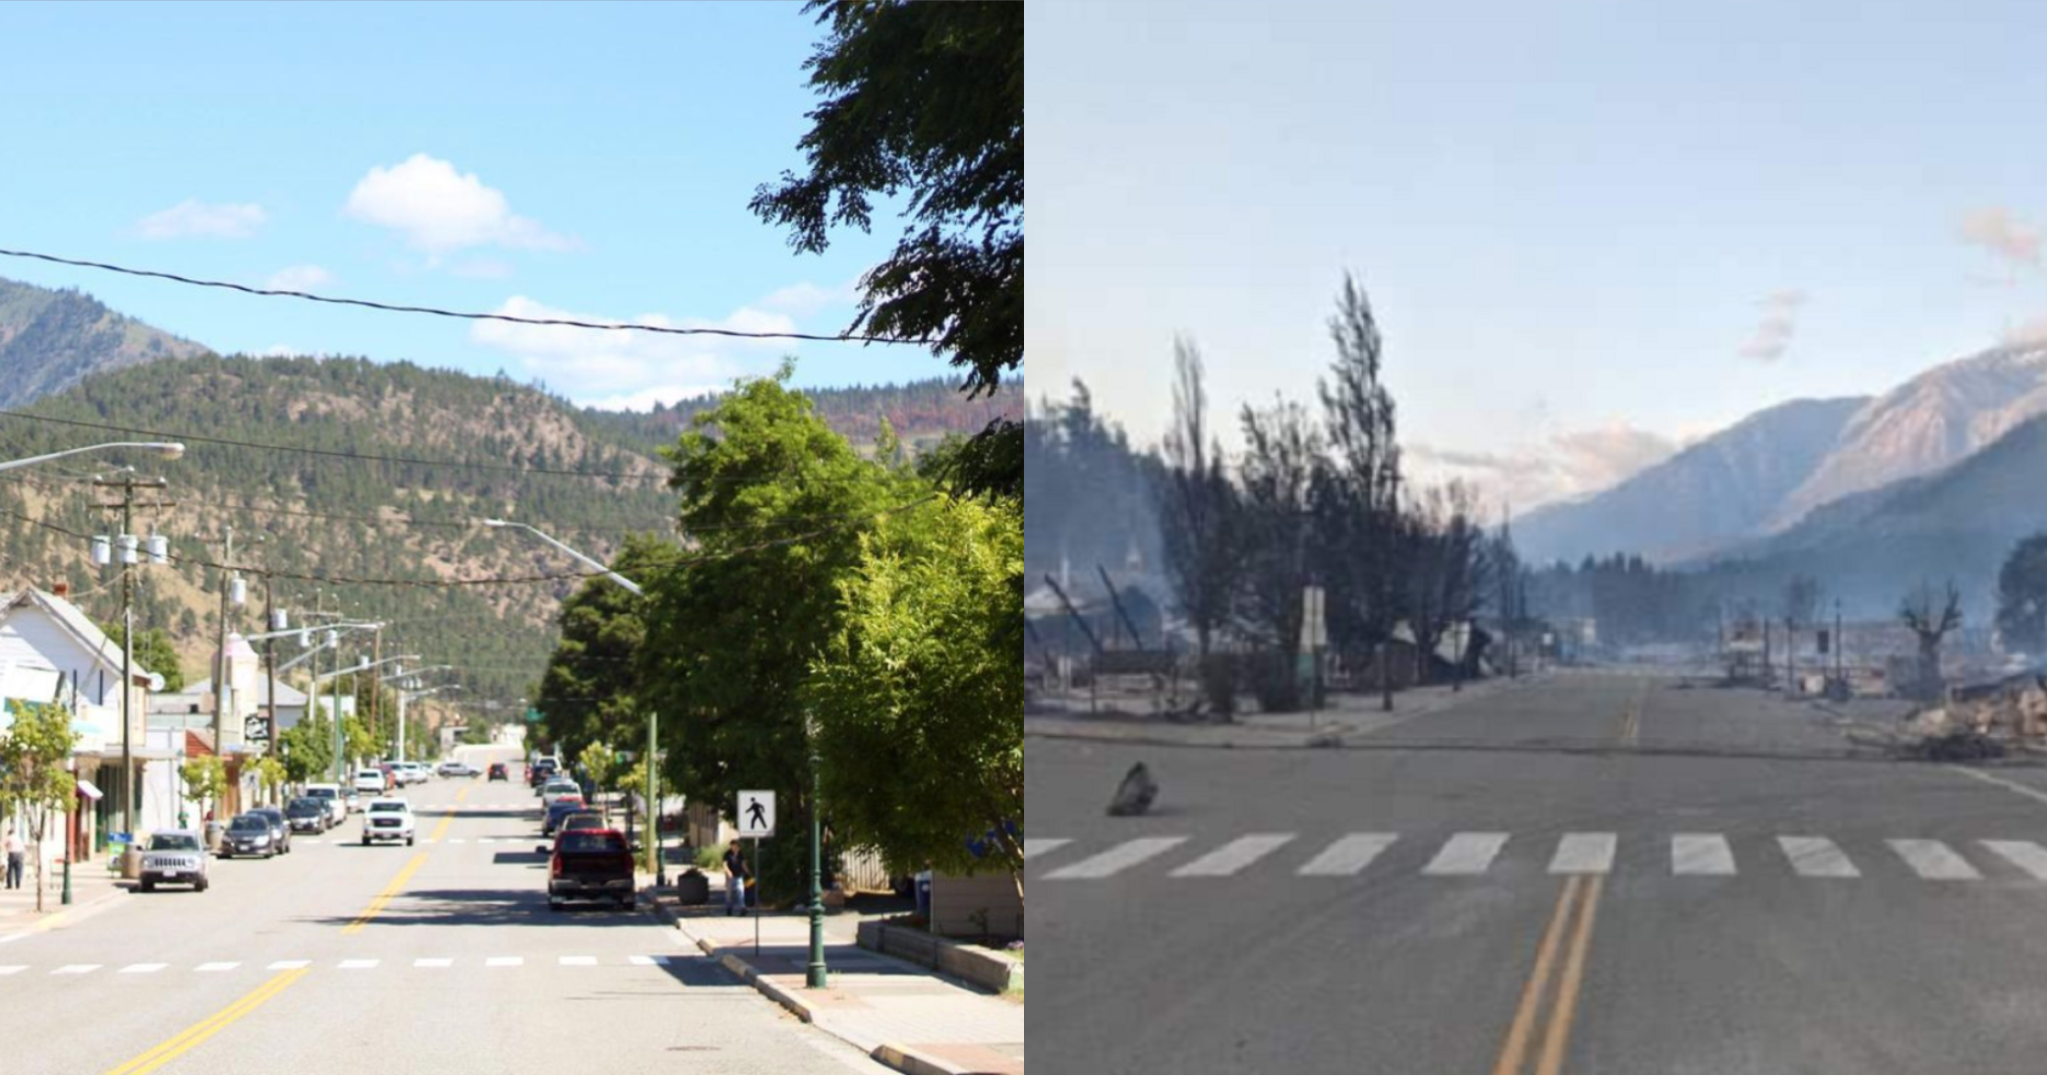 A look at downtown Lytton, B.C., before and after a fire swept through the village on June 30, 2021.